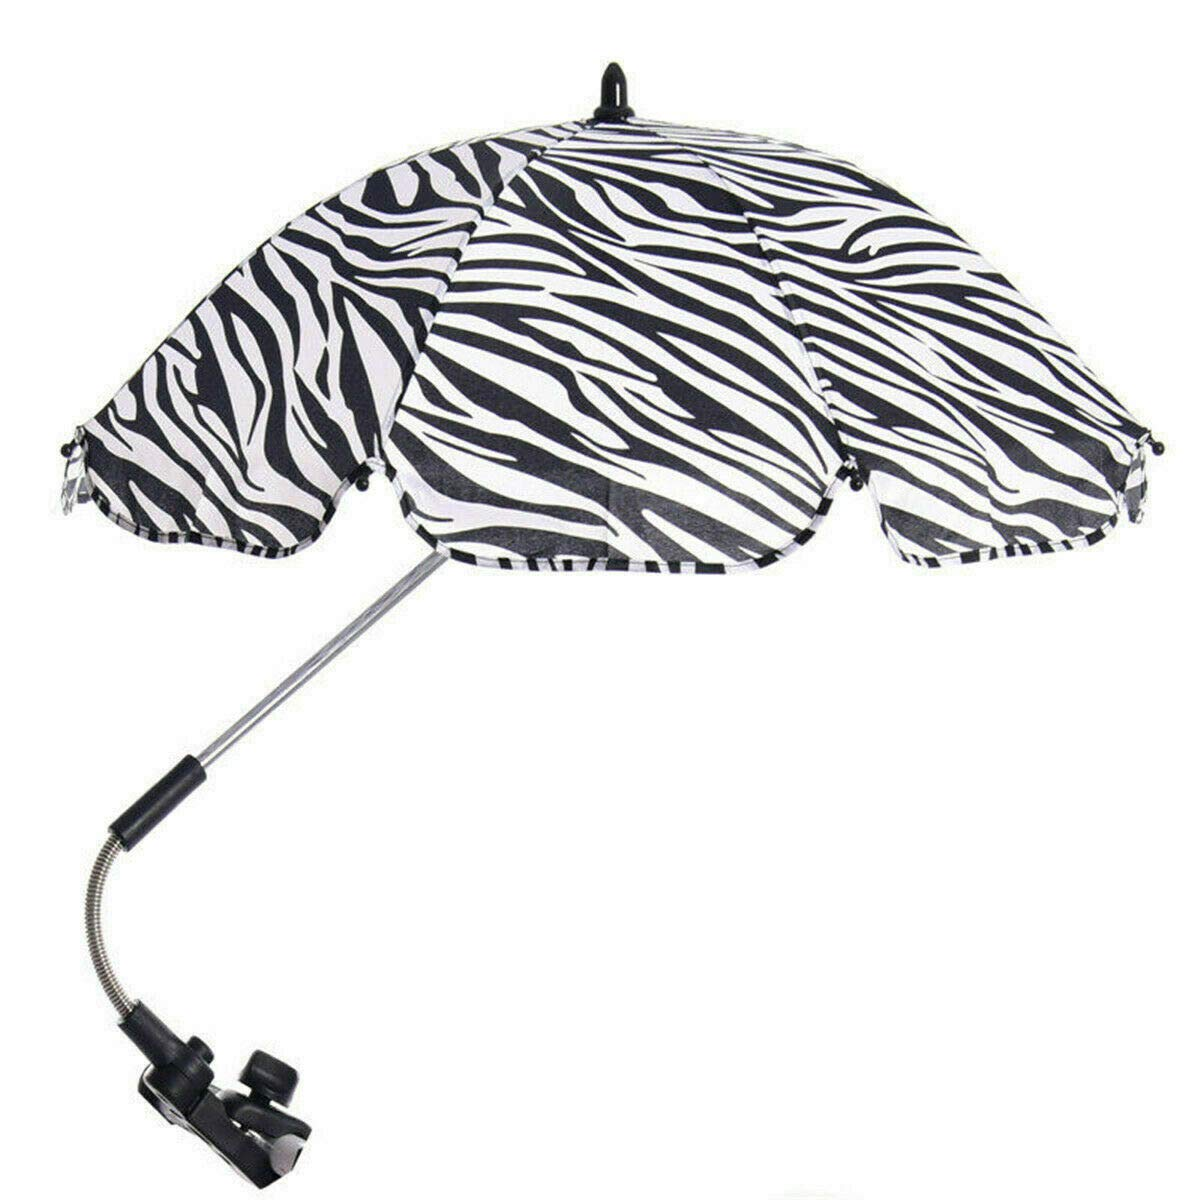 Global Supplies Present Flexible Baby Sun Umbrella Parasol Buggy Pushchair Shade in Zebra